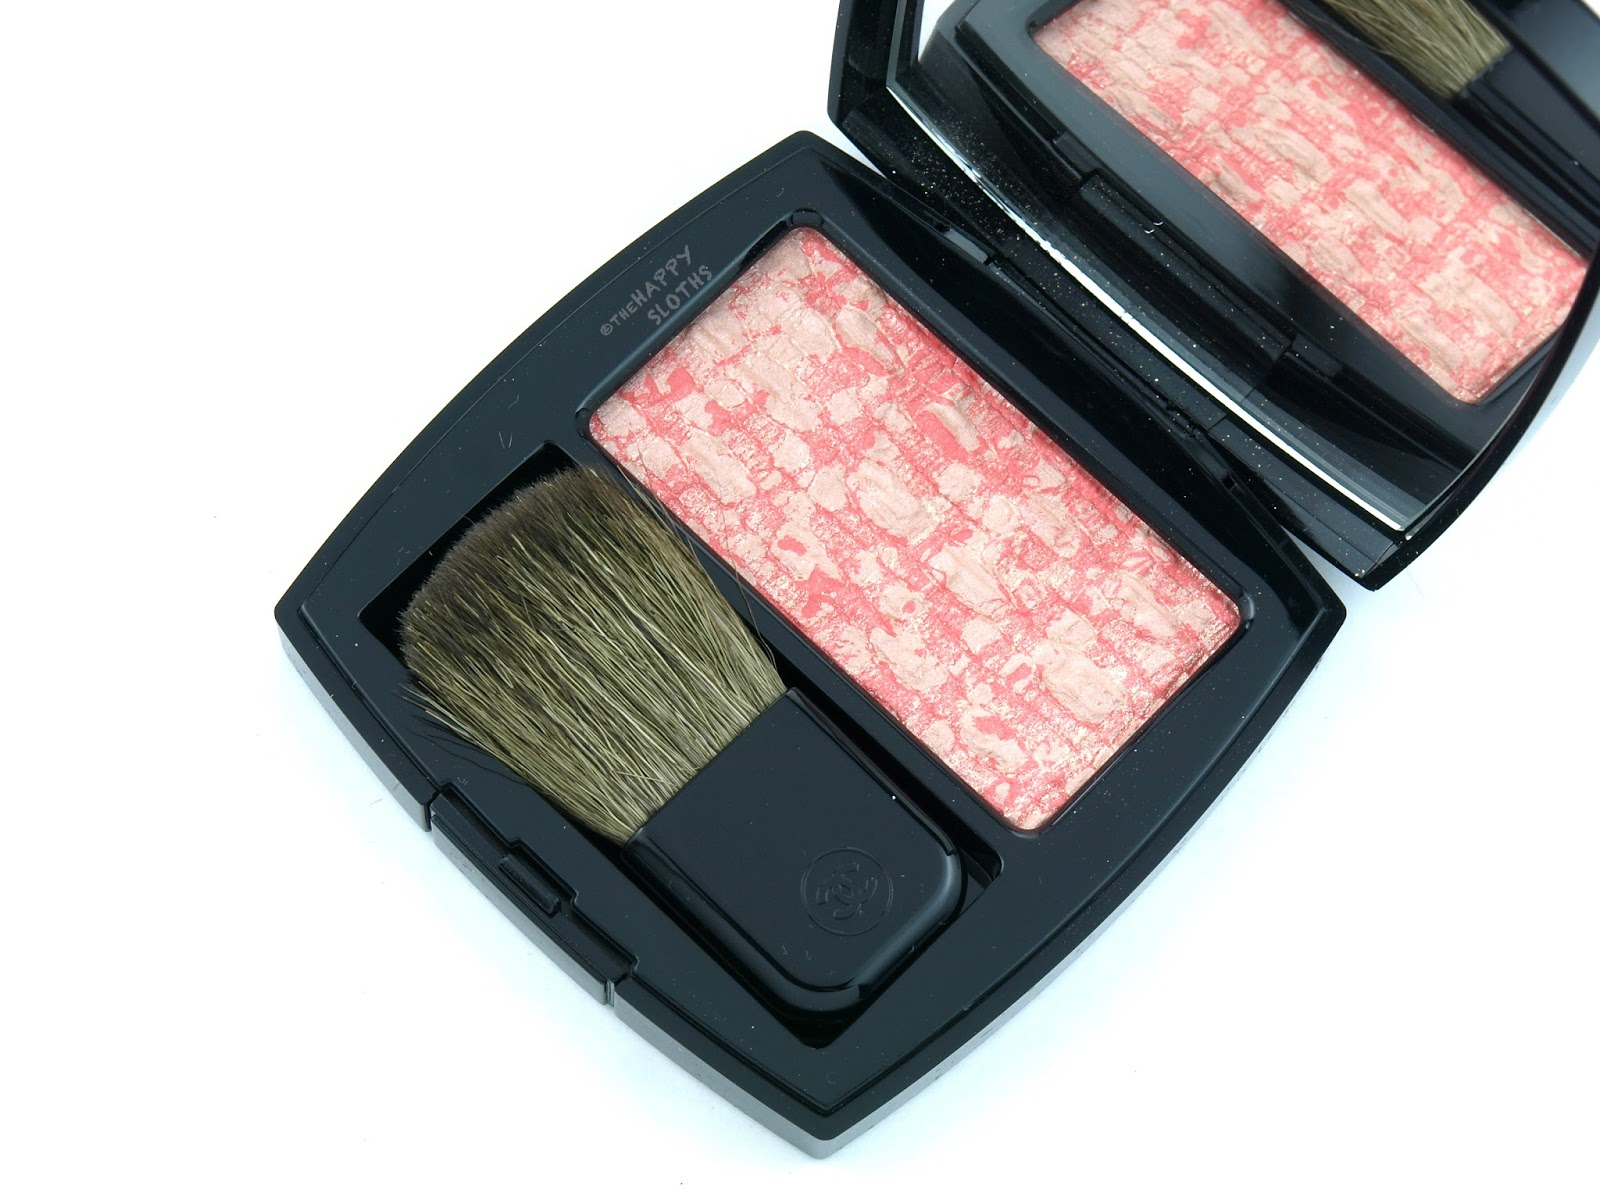 Chanel Spring 2017 Les Tissages de Chanel Blush Duo Tweed Effect 100 Tweed Coralline Swatches Review